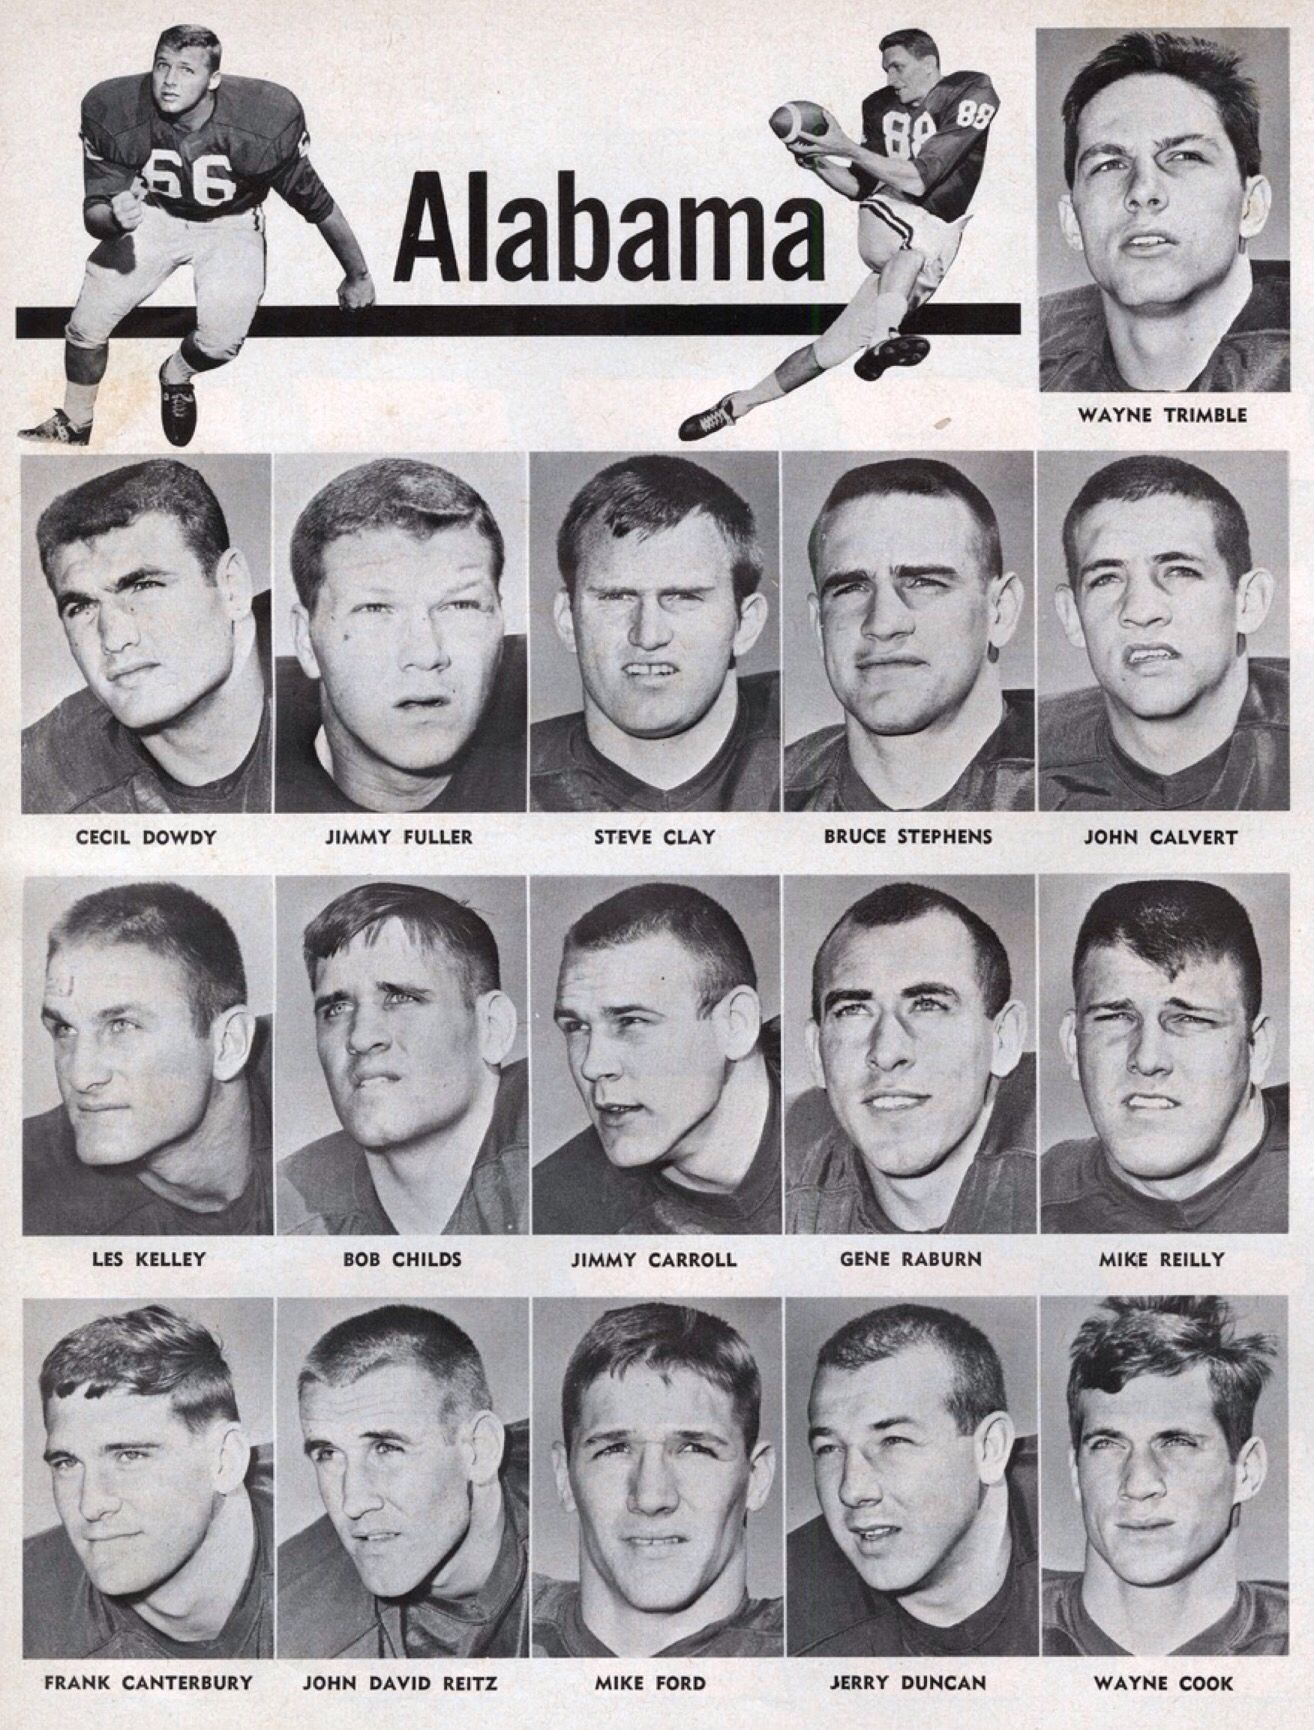 Alabama Football Roster 1966 Alabama Crimson Tide Roster From Alabama Football